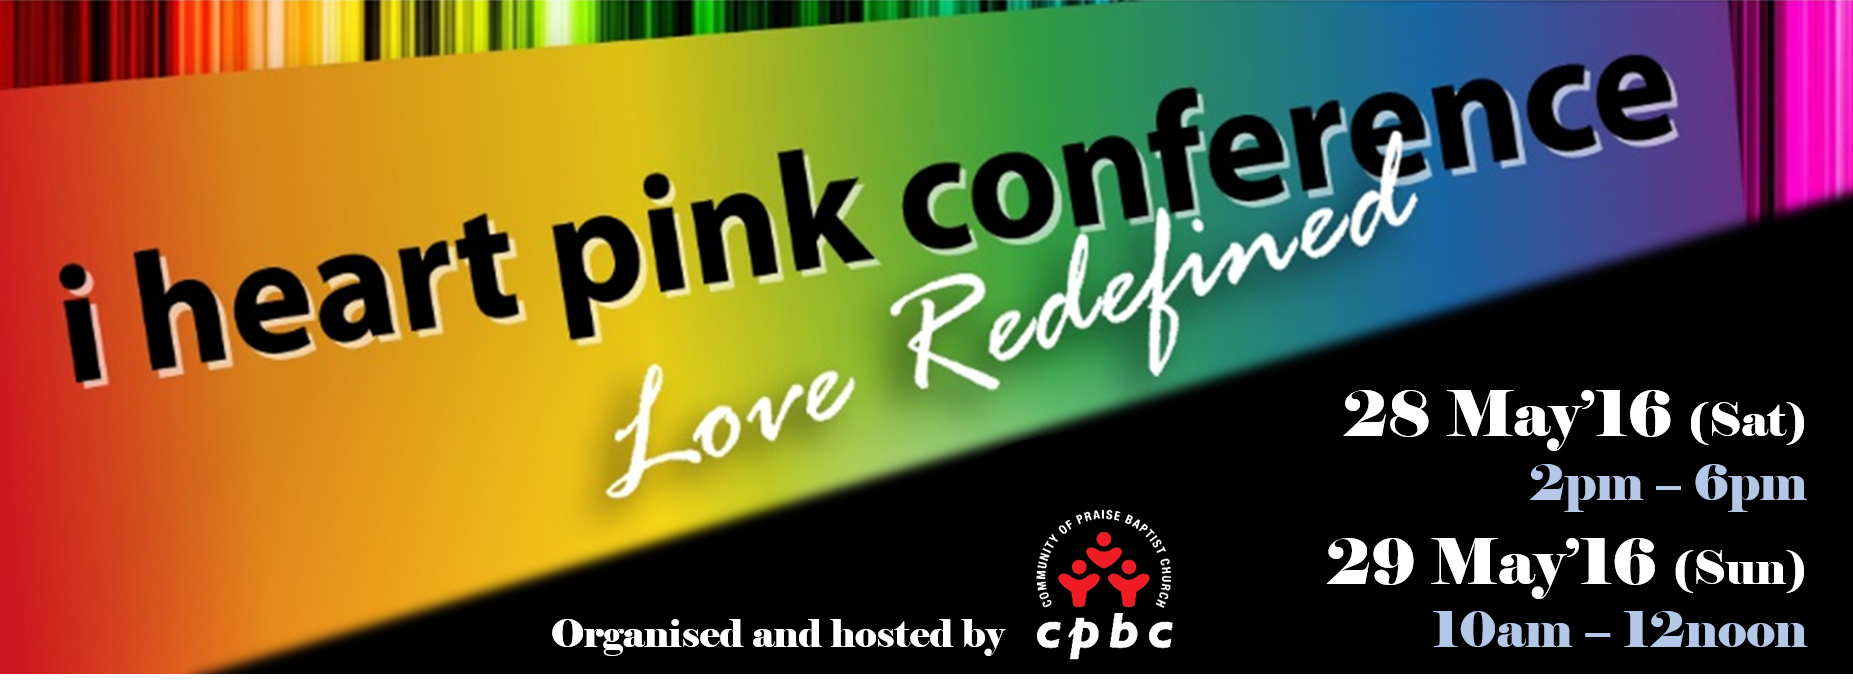 I HEART Pink Conference